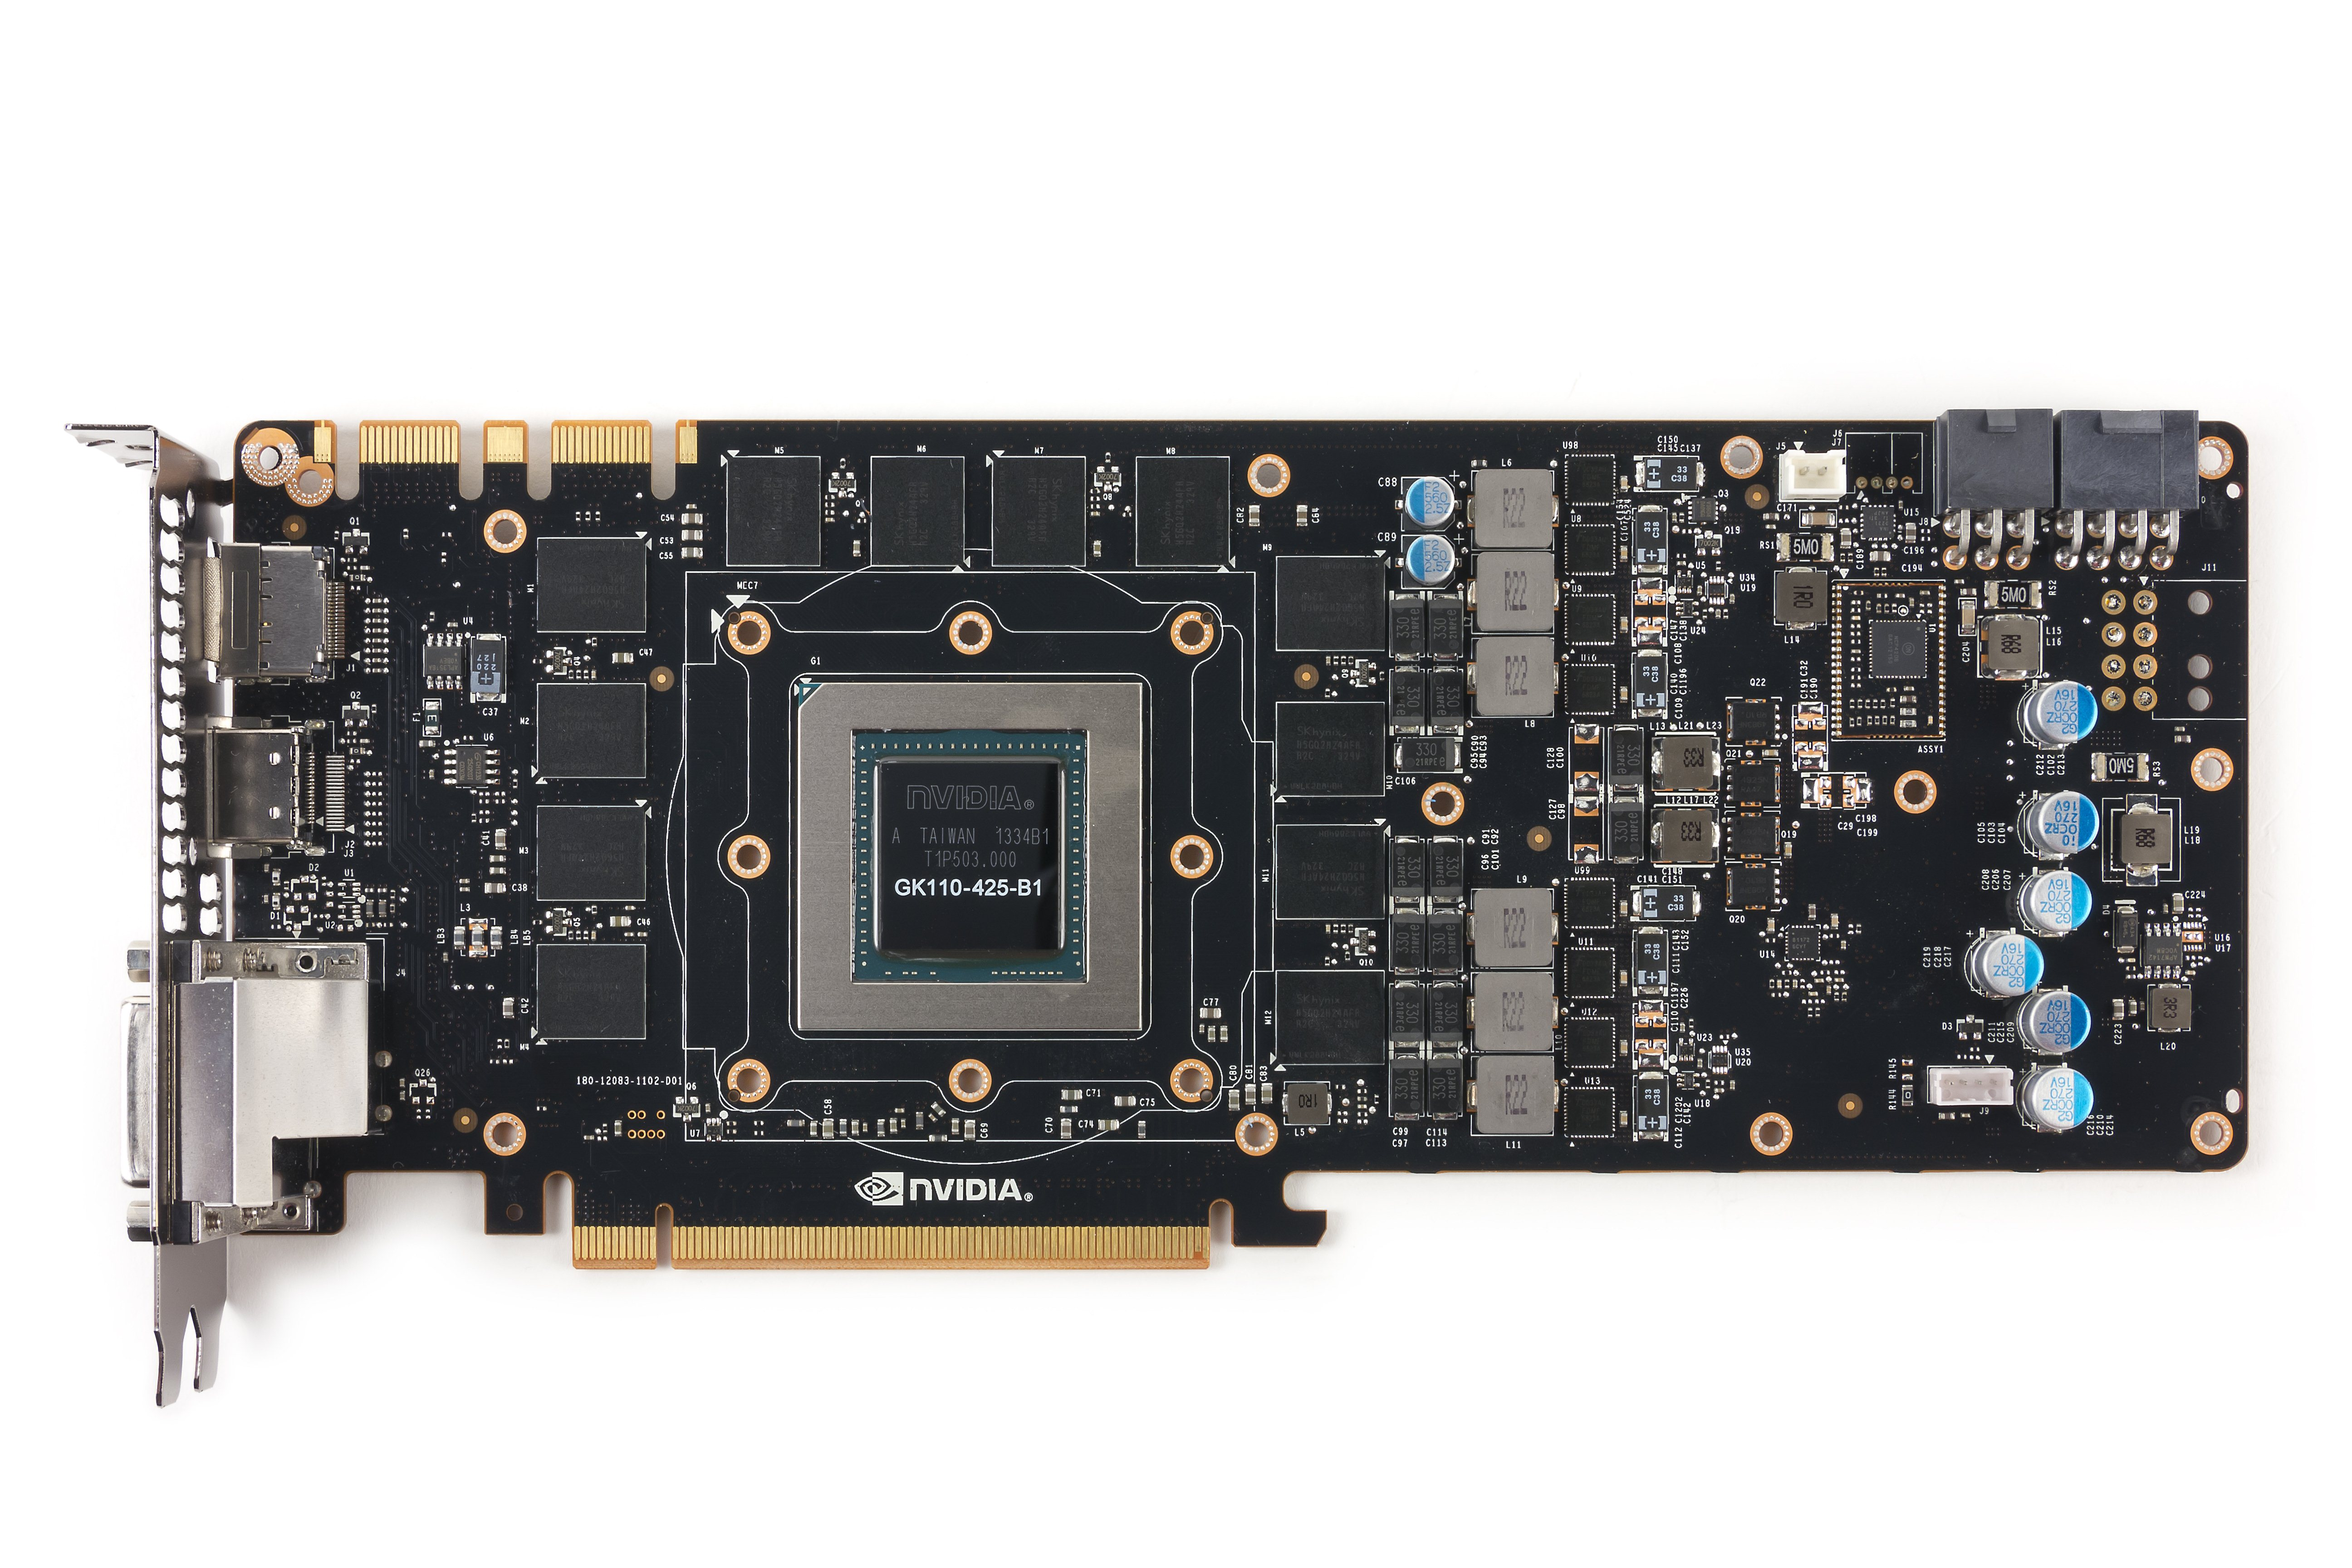 Gigabyte geforce gtx 780 ti windforce oc 3072 мб 384 битной